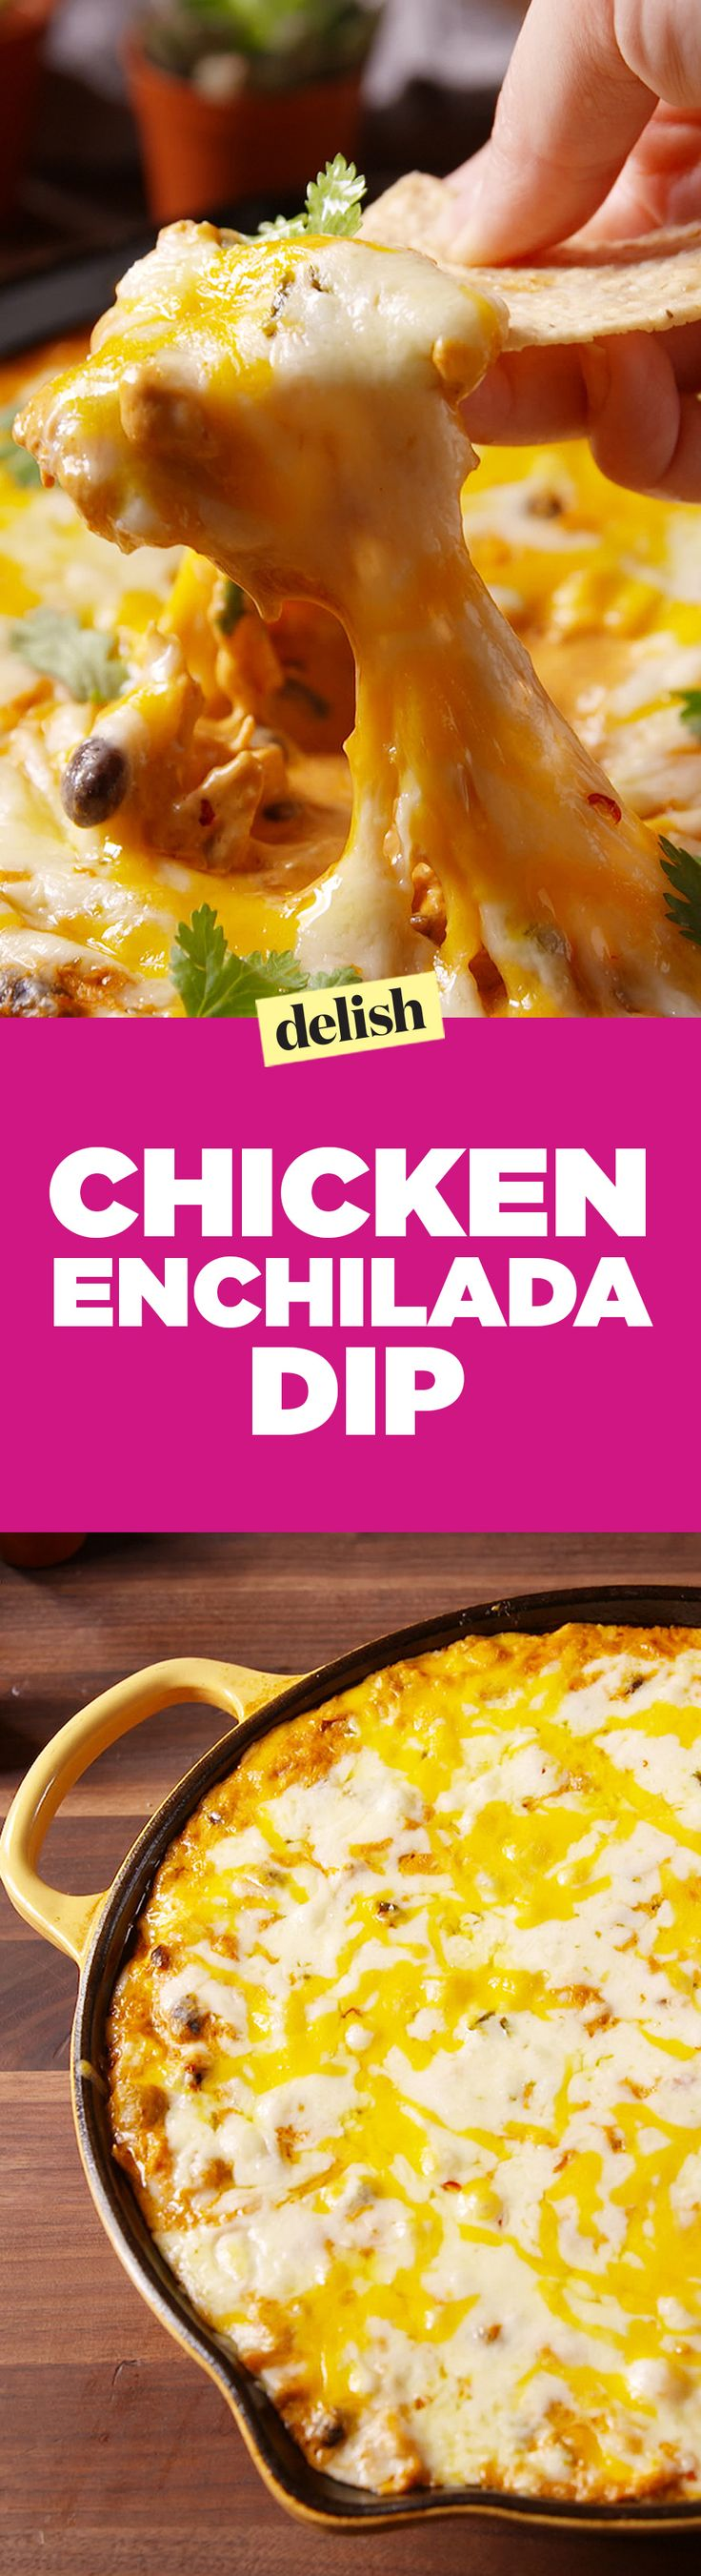 Chicken enchilada dip puts chips and salsa to shame. Get the recipe on Delish.com.